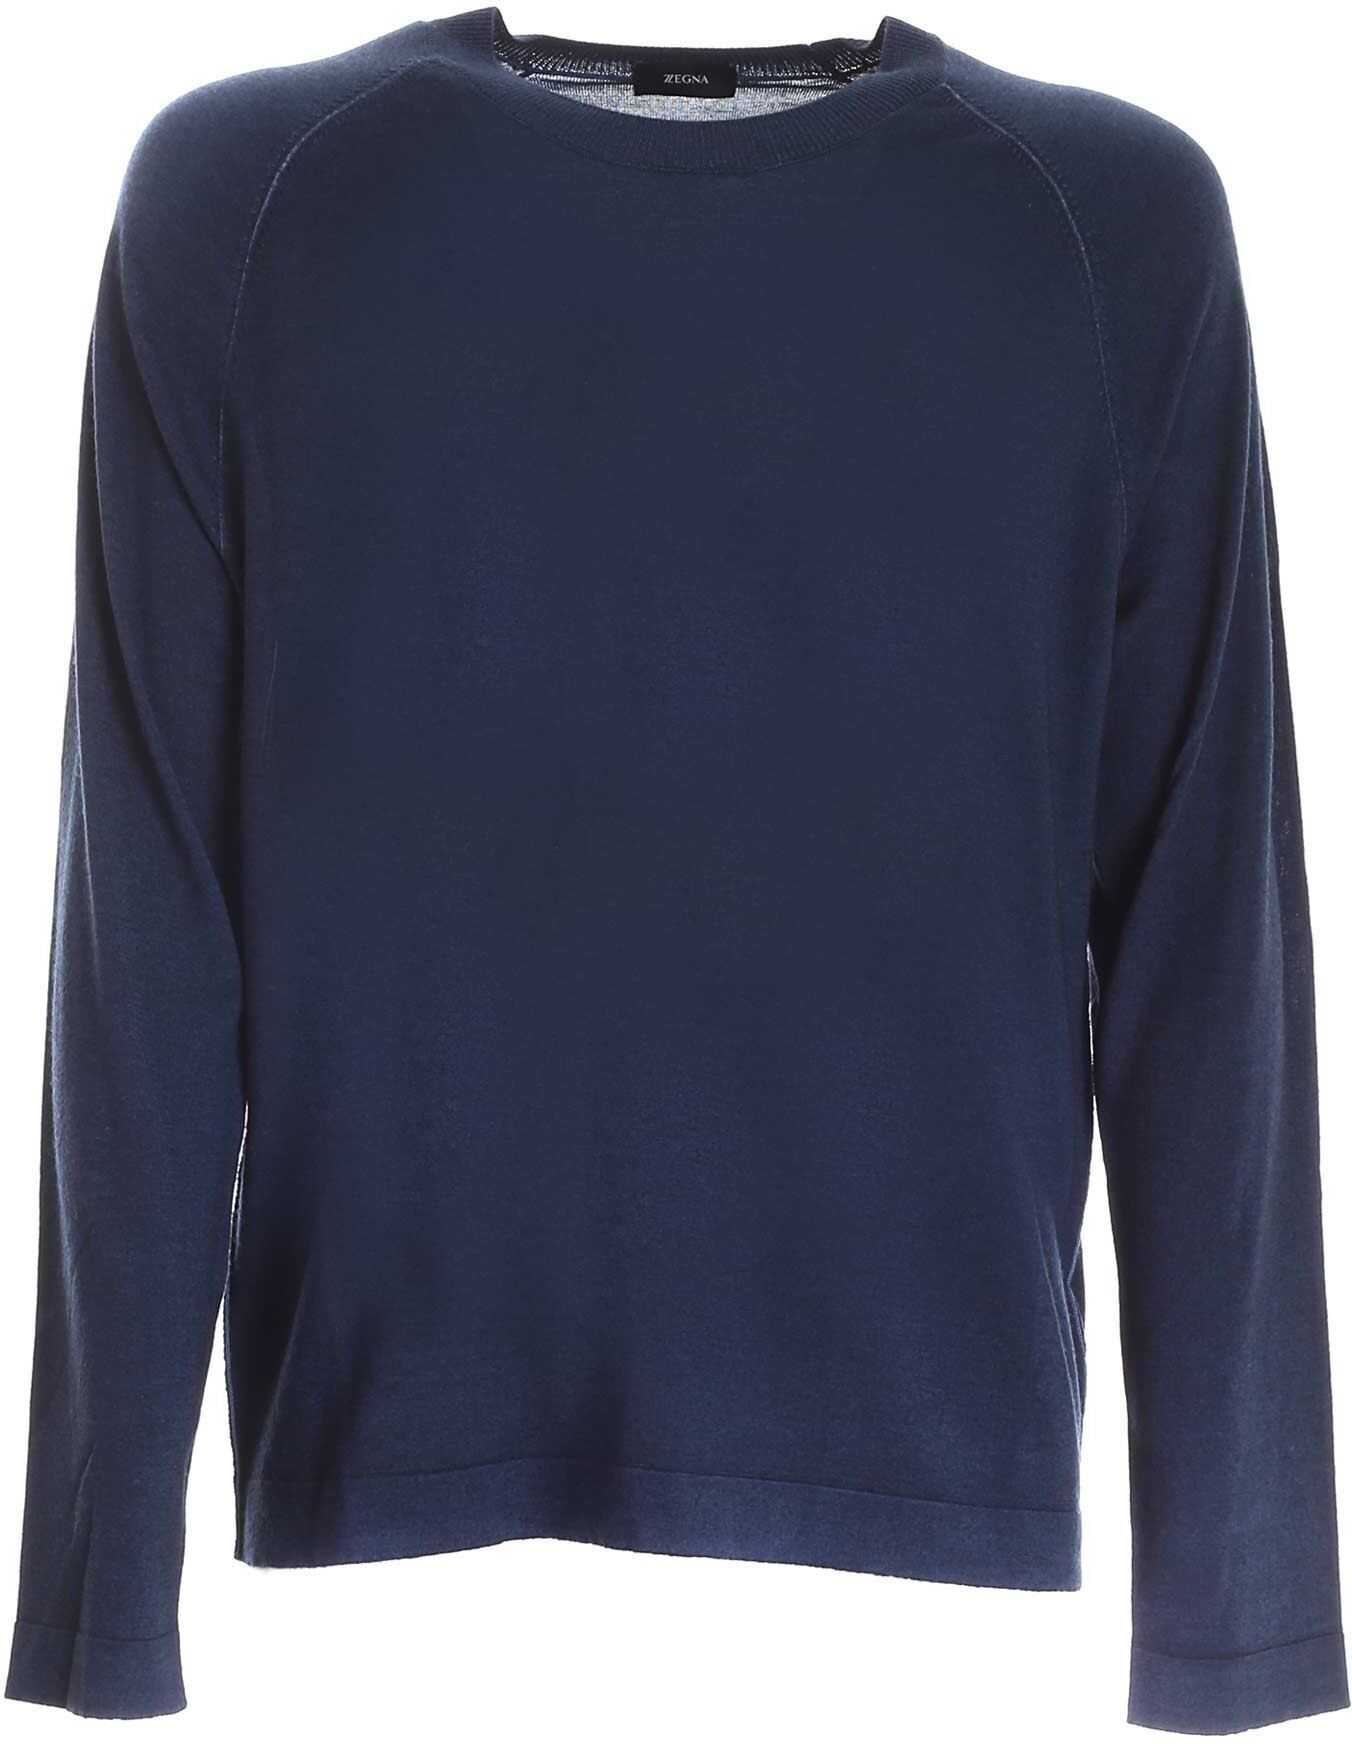 Z Zegna Pullover In Blue Melange With Reverse Stitching Blue imagine